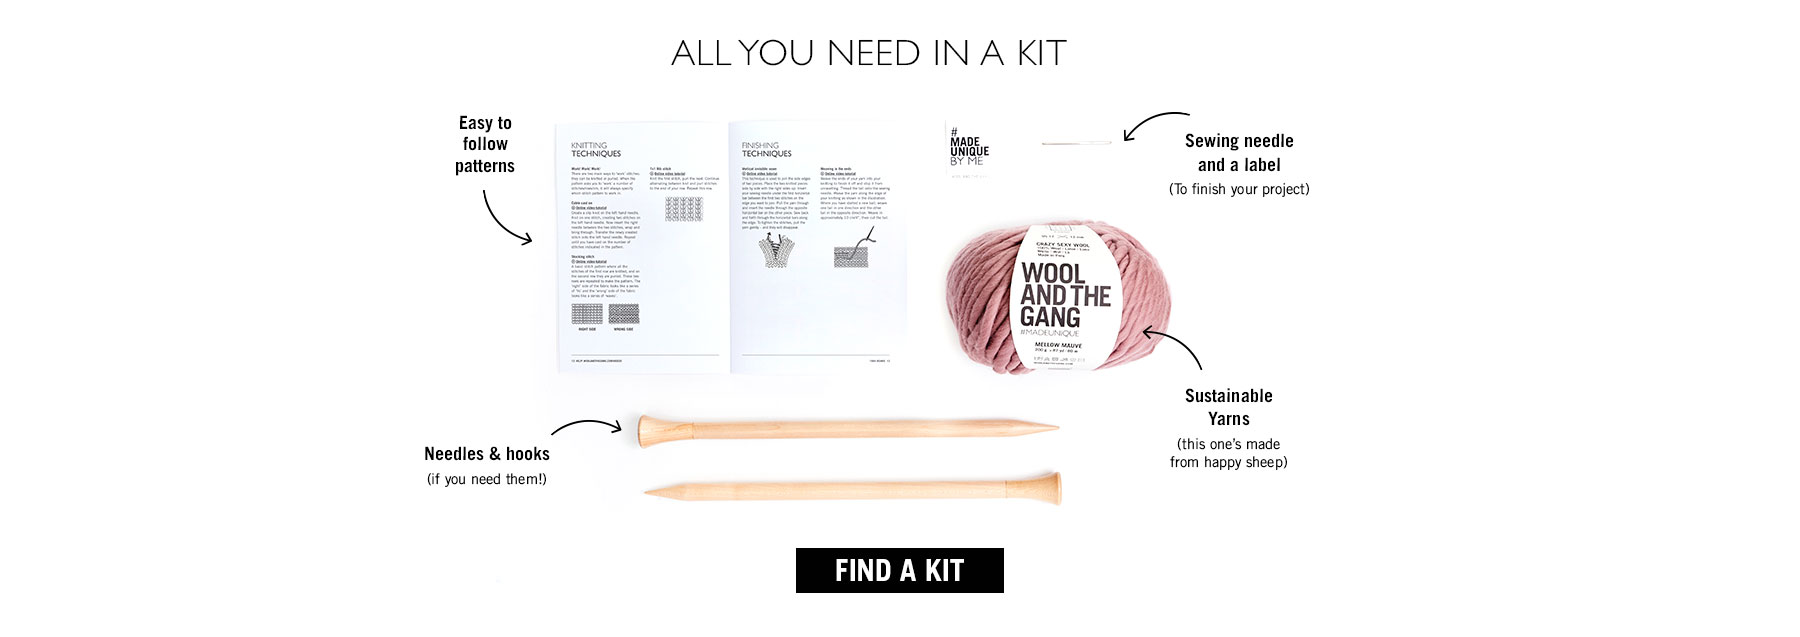 01 all you need in a kit en